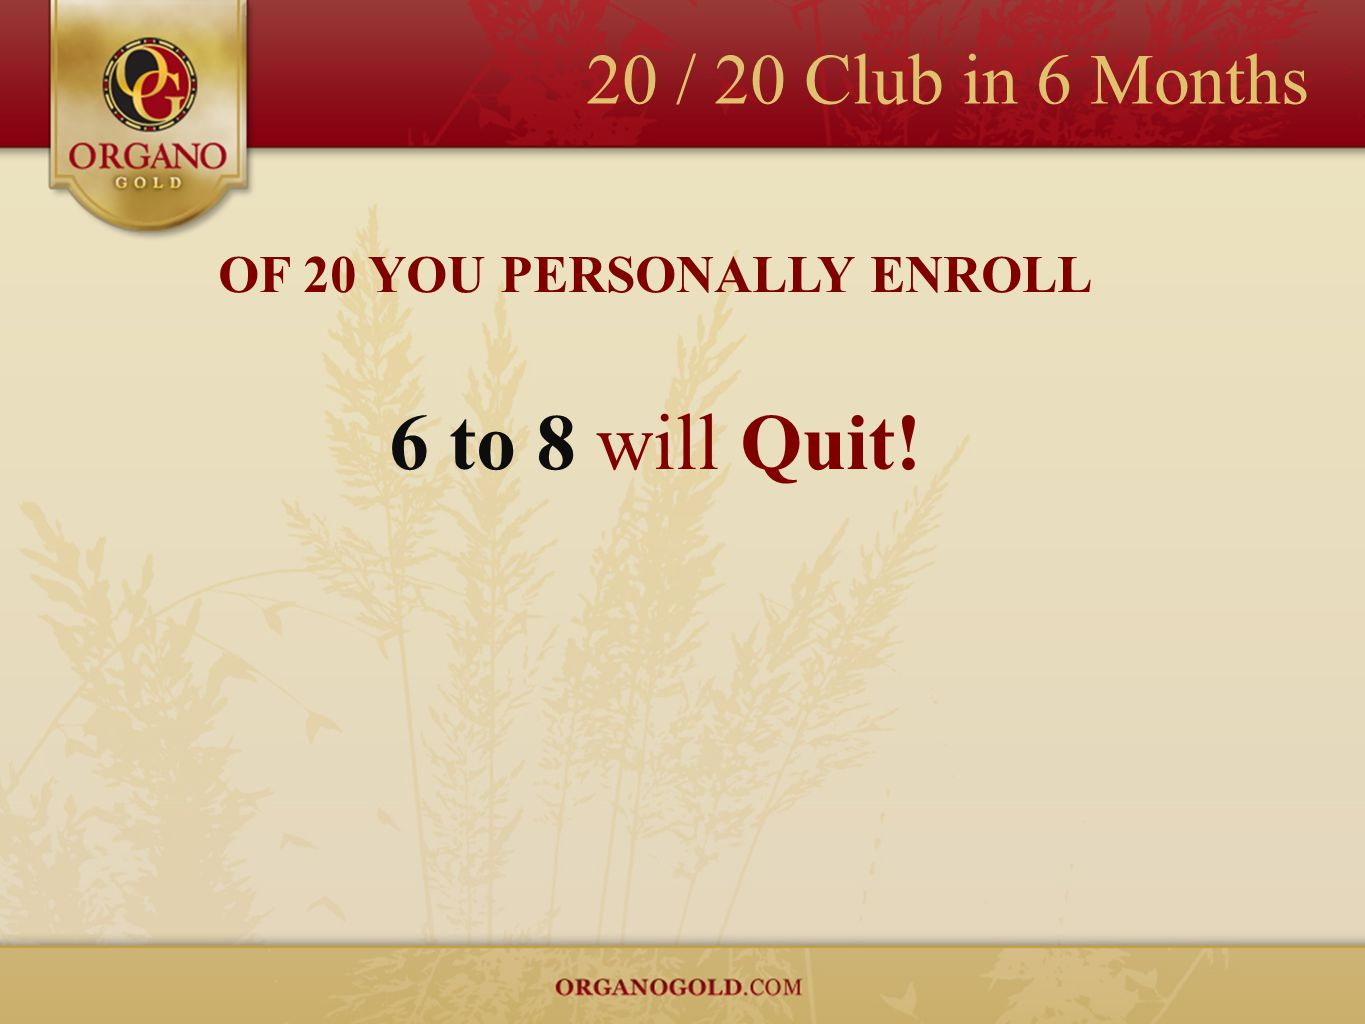 OF 20 YOU PERSONALLY ENROLL